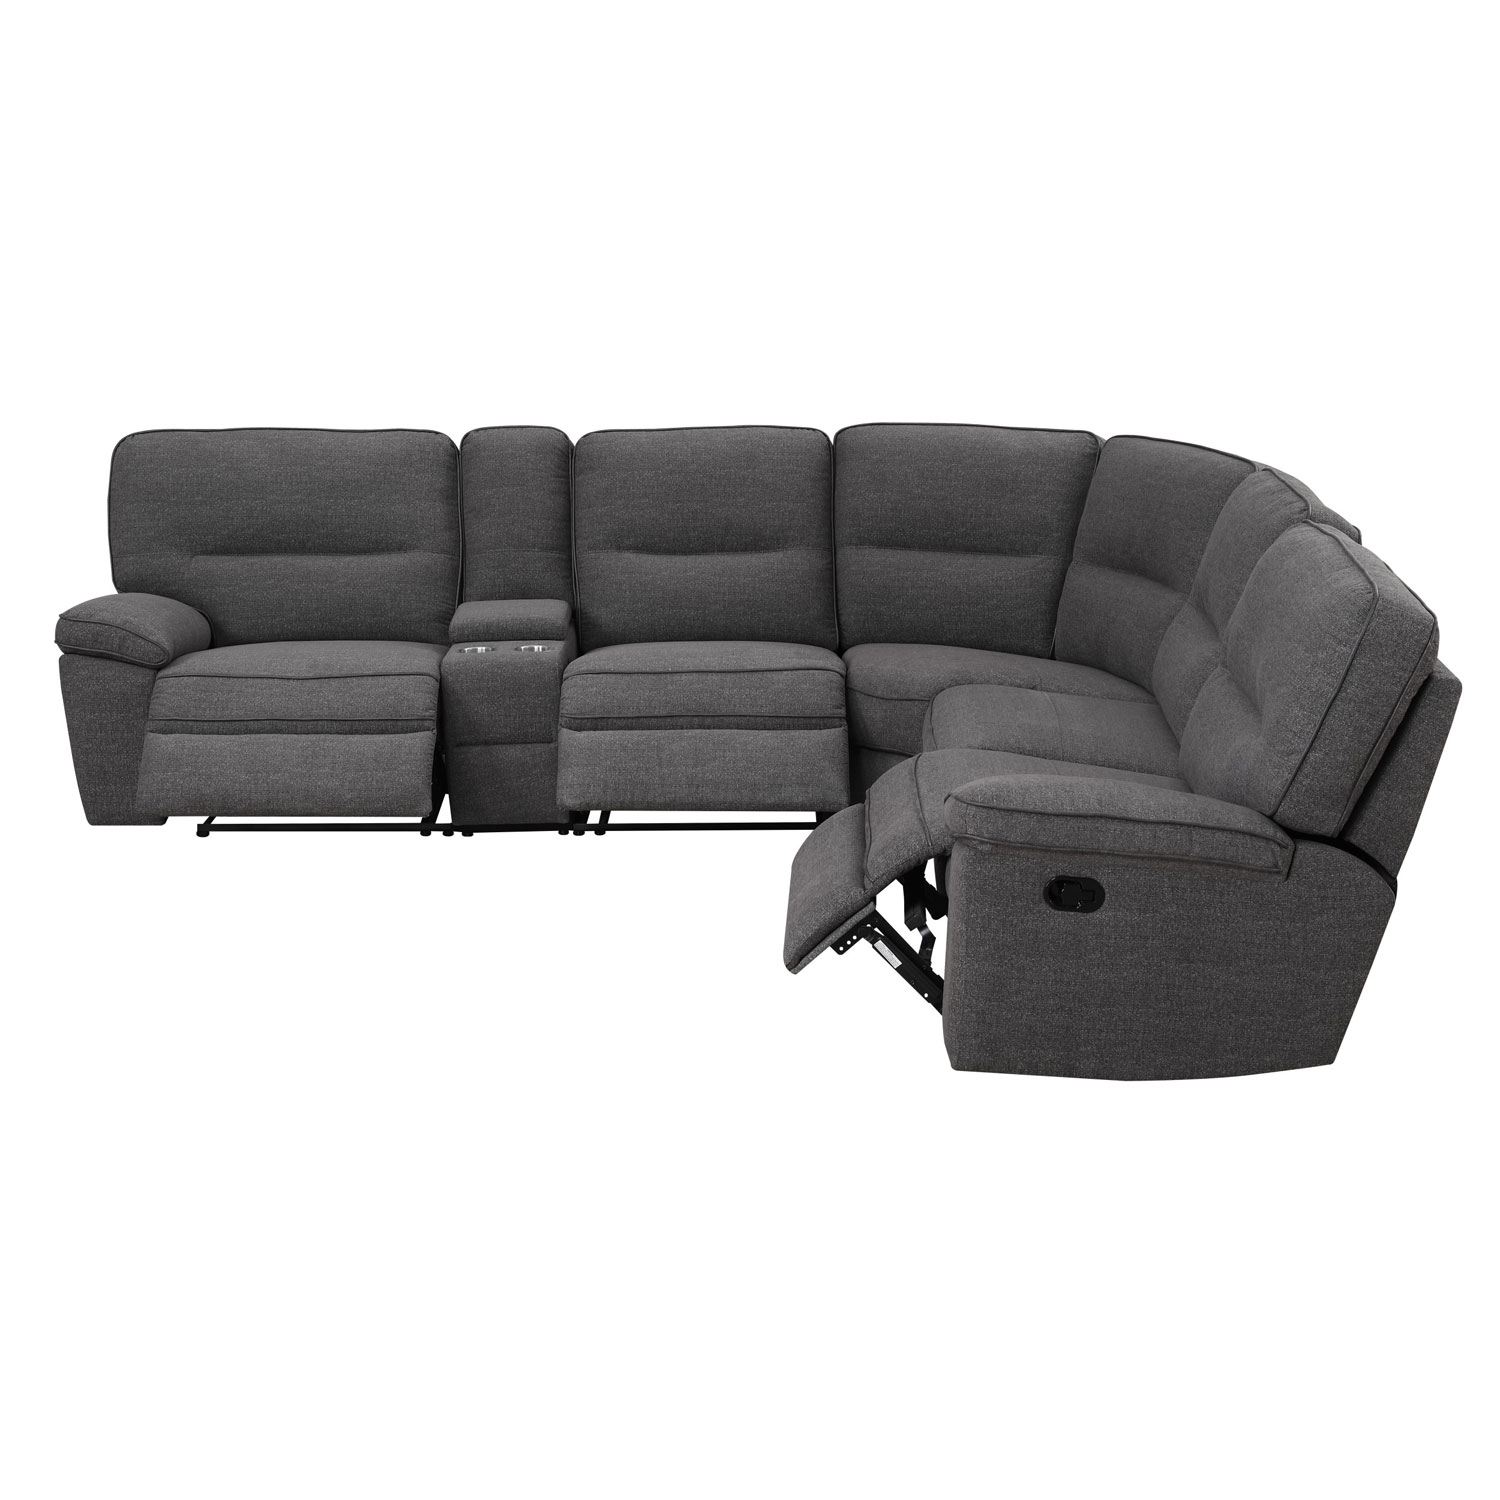 Emerald Home Furnishings Emerald Home Alberta 6 Piece Sectional With Regard To Norfolk Grey 6 Piece Sectionals (Photo 23 of 30)